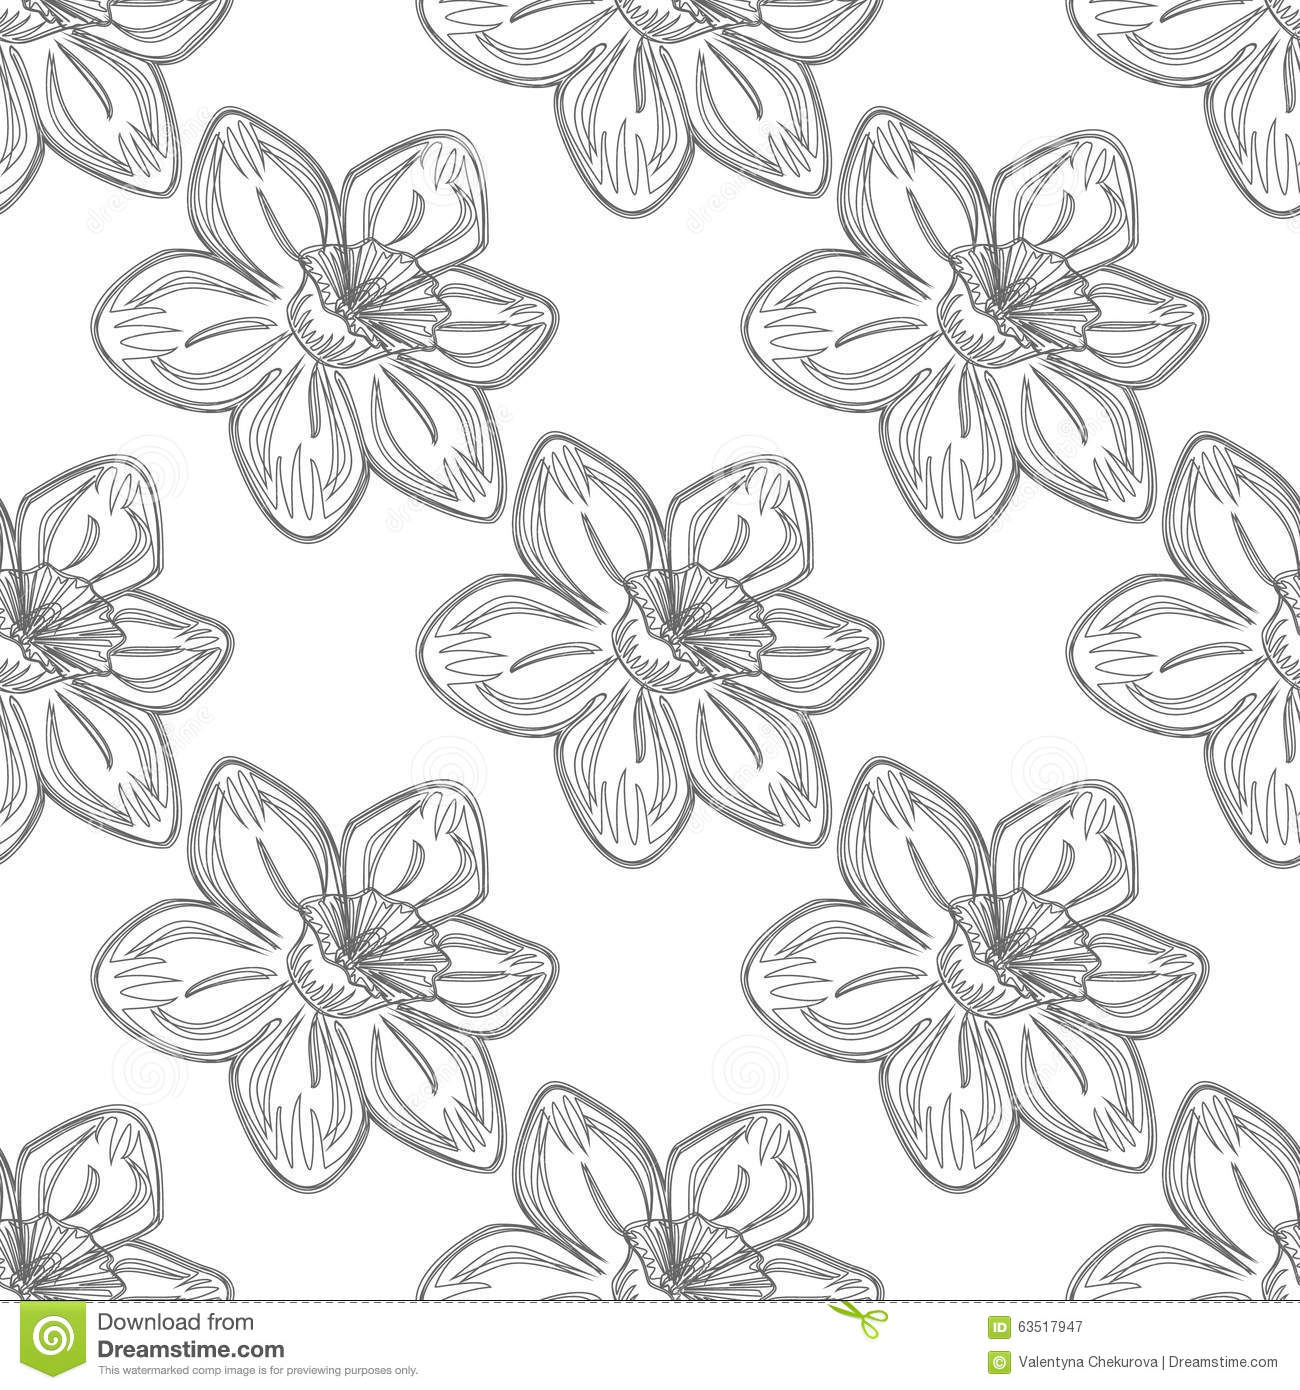 Line Drawing Flower Vector : Seamless vector flower pattern background with flowers